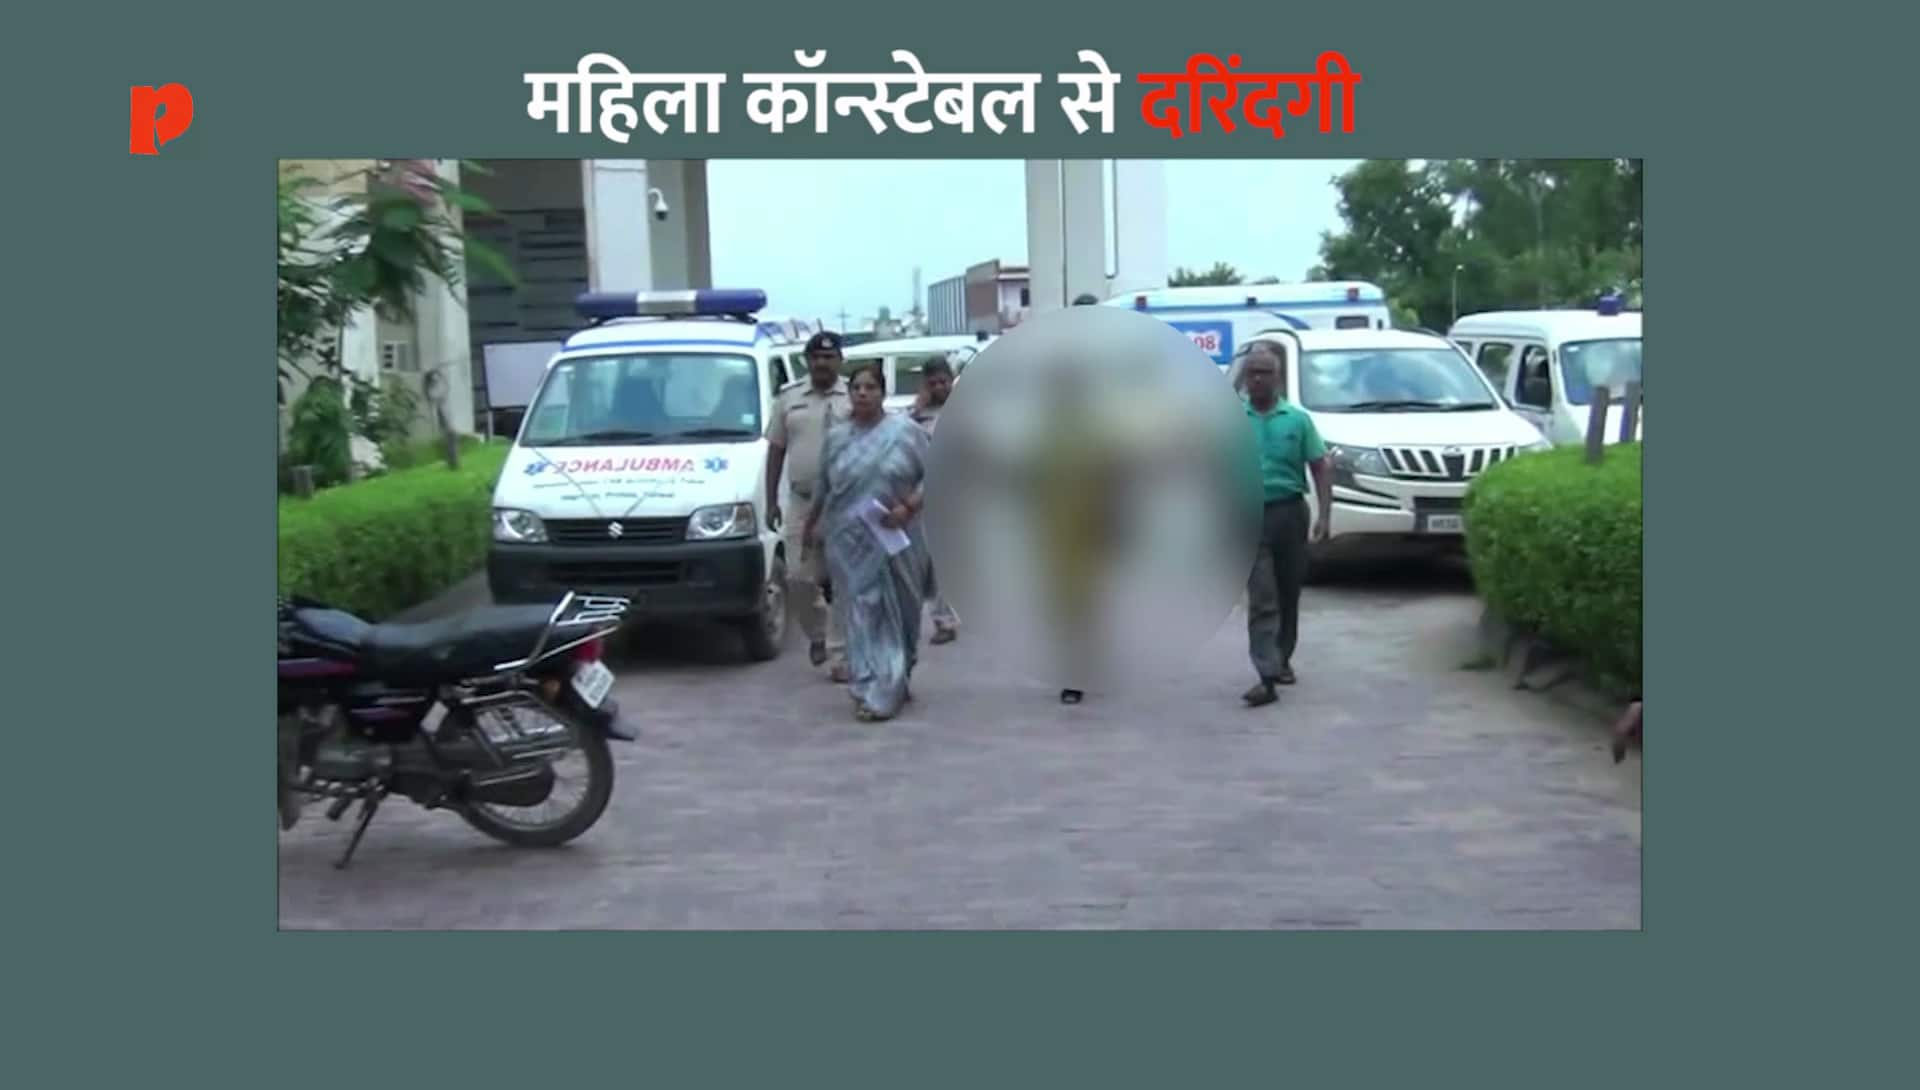 Women constable raped in Haryana told women commission officials and police her story